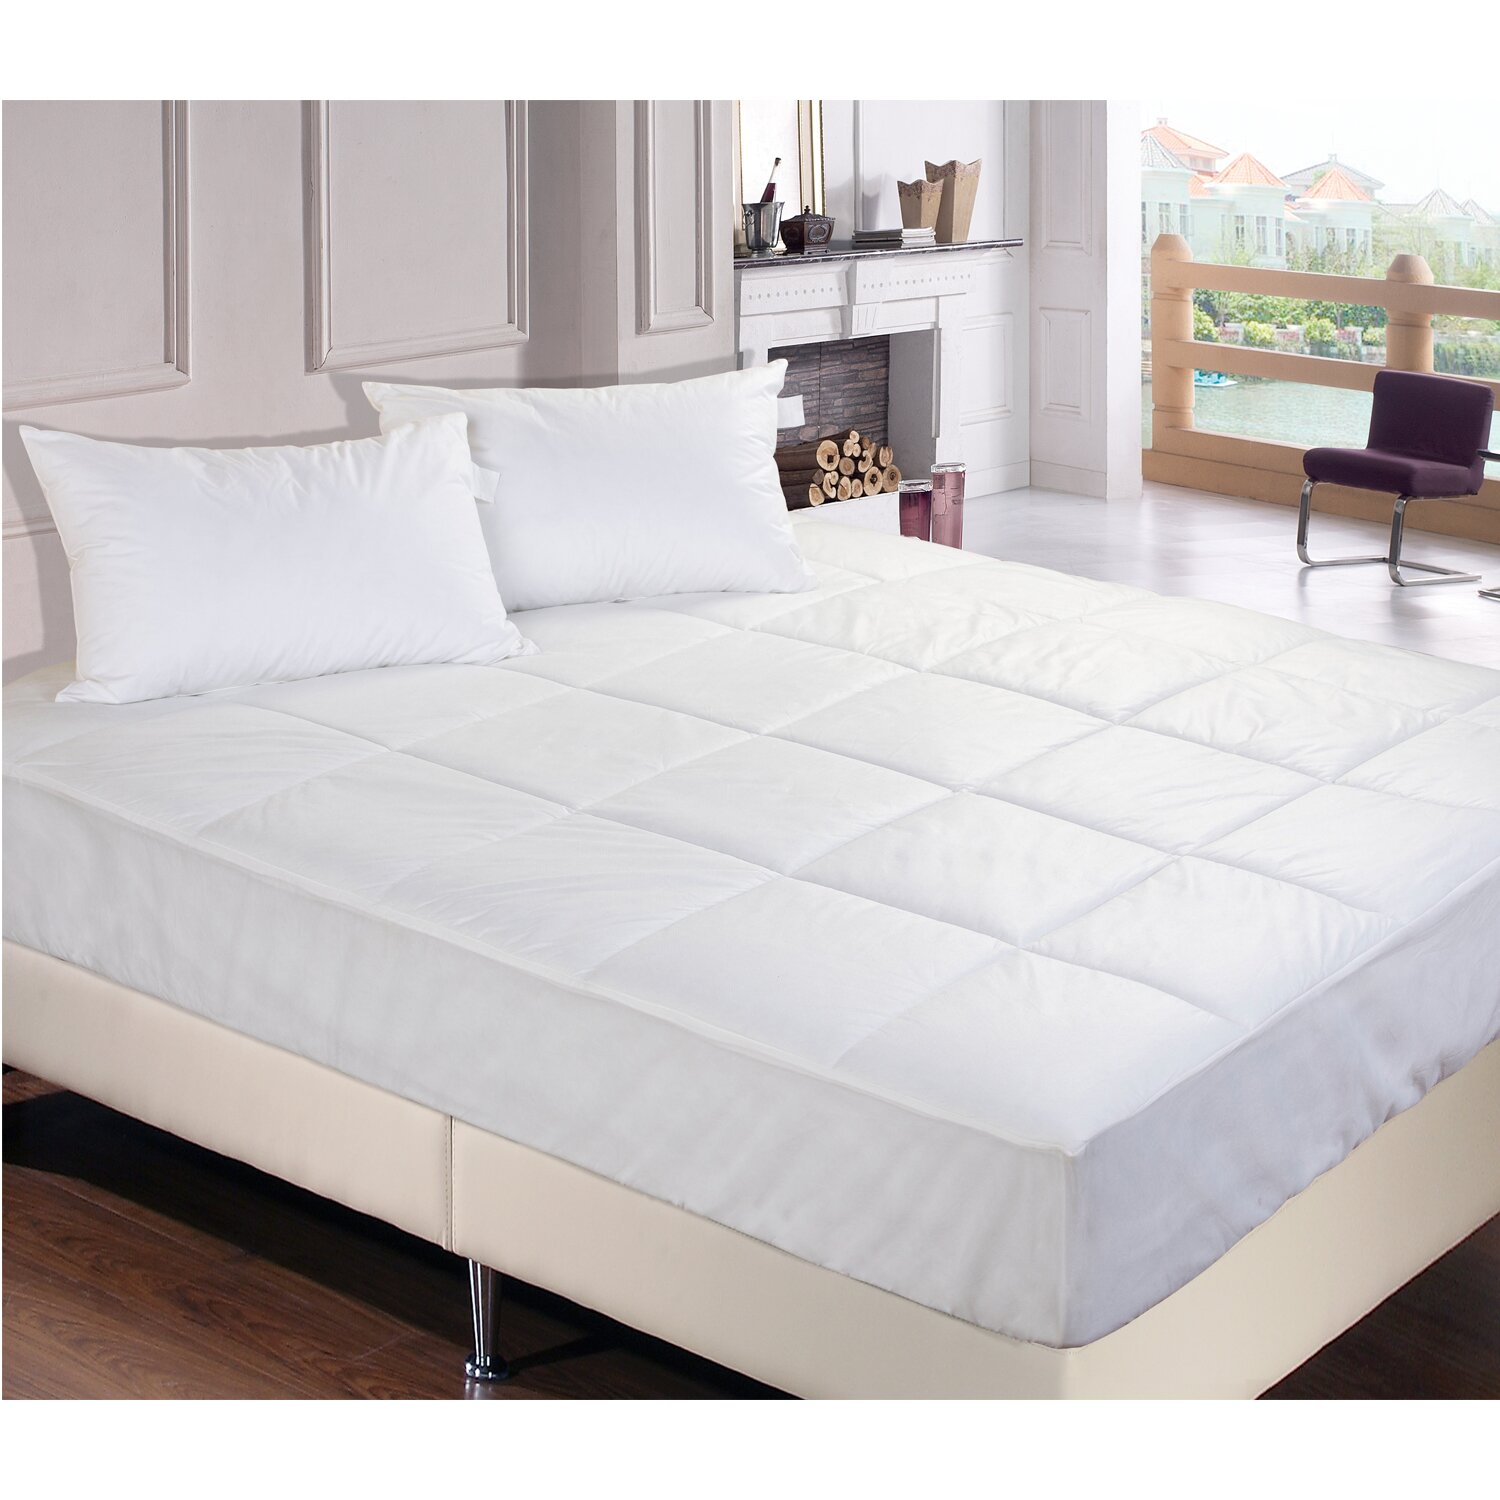 Permafresh bed bug dust mite control water resistant for Bed bug resistant mattress